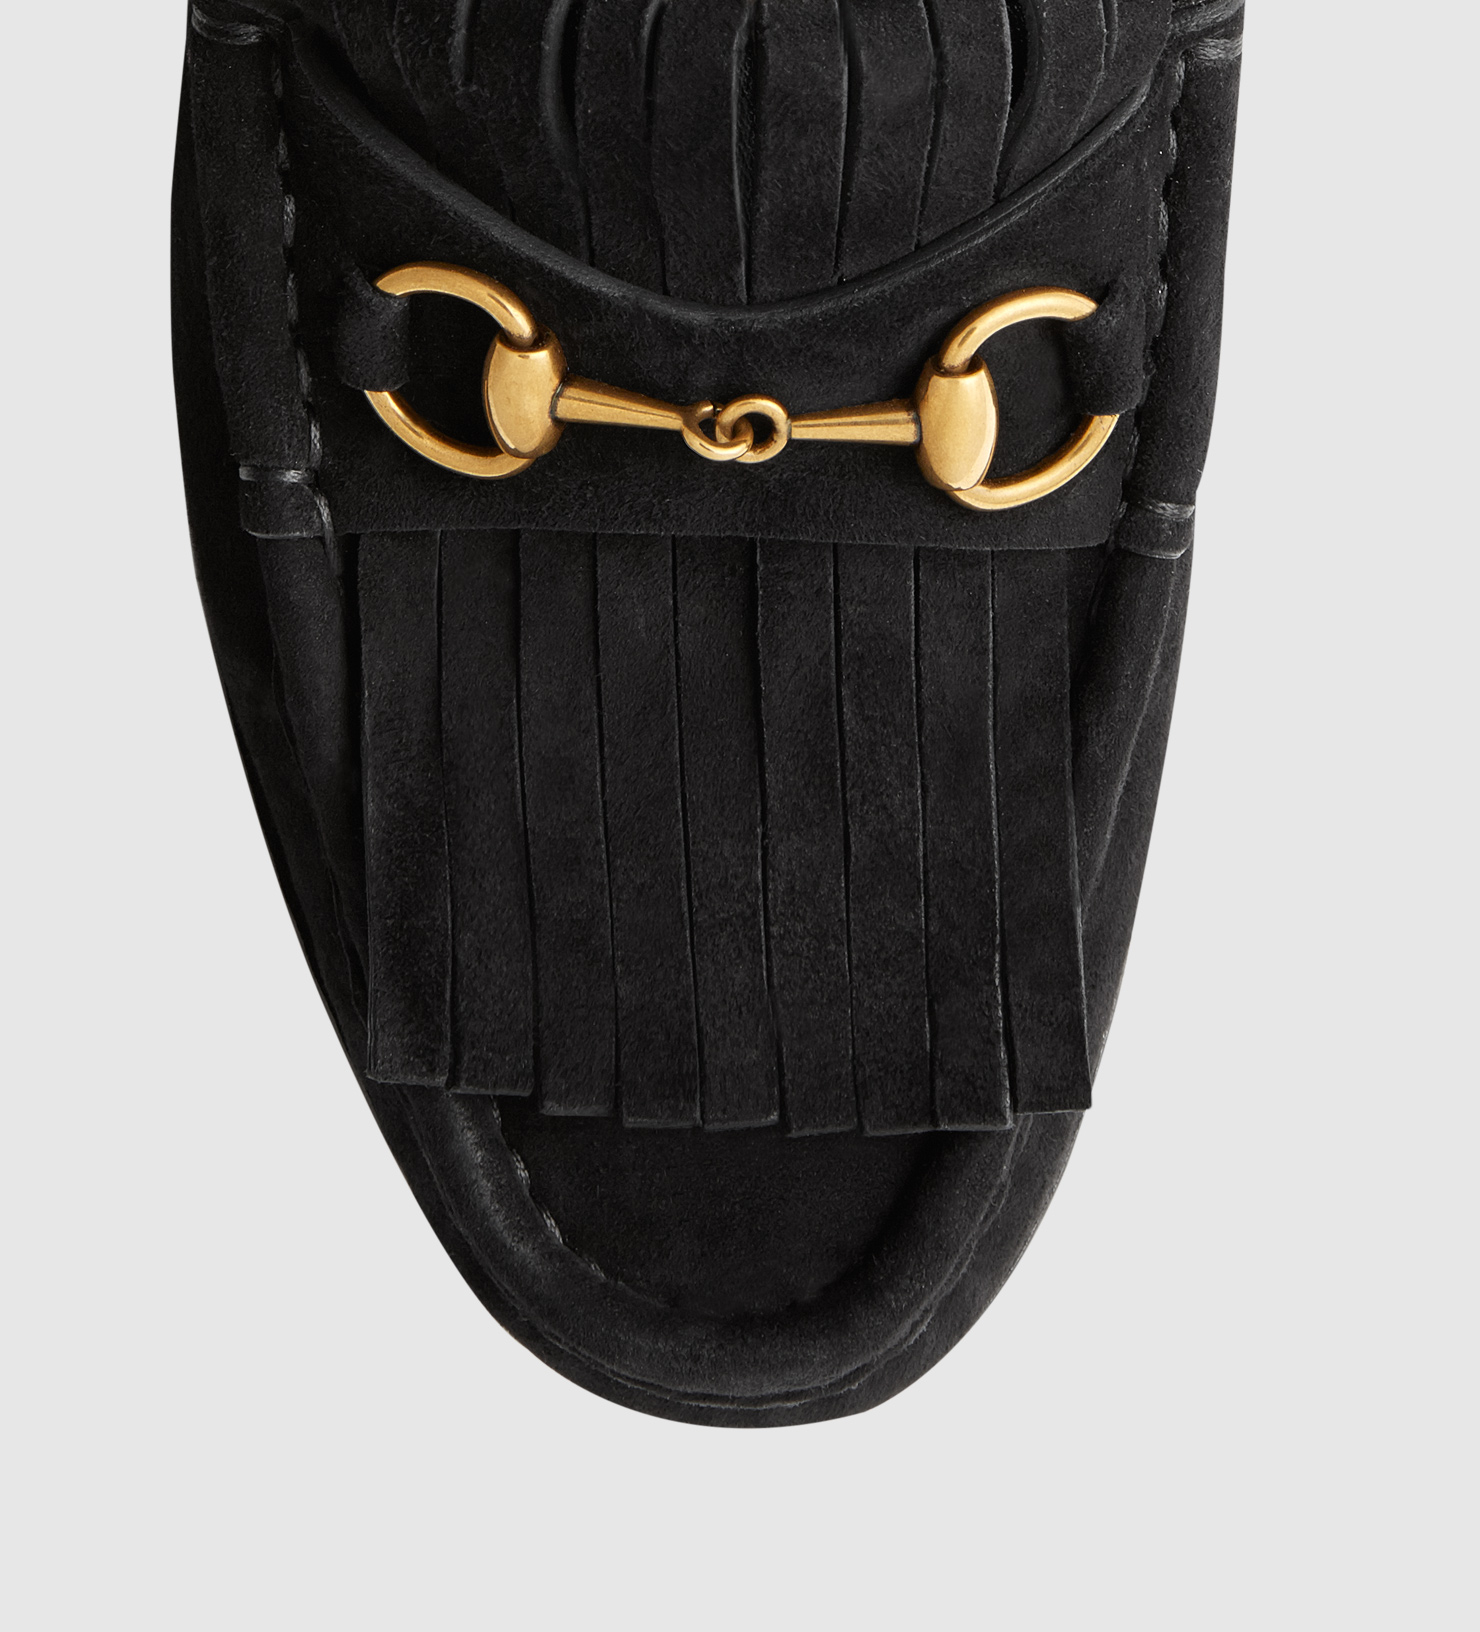 cb6a976a448 Lyst - Gucci Horsebit Loafer In Fringed Suede in Black